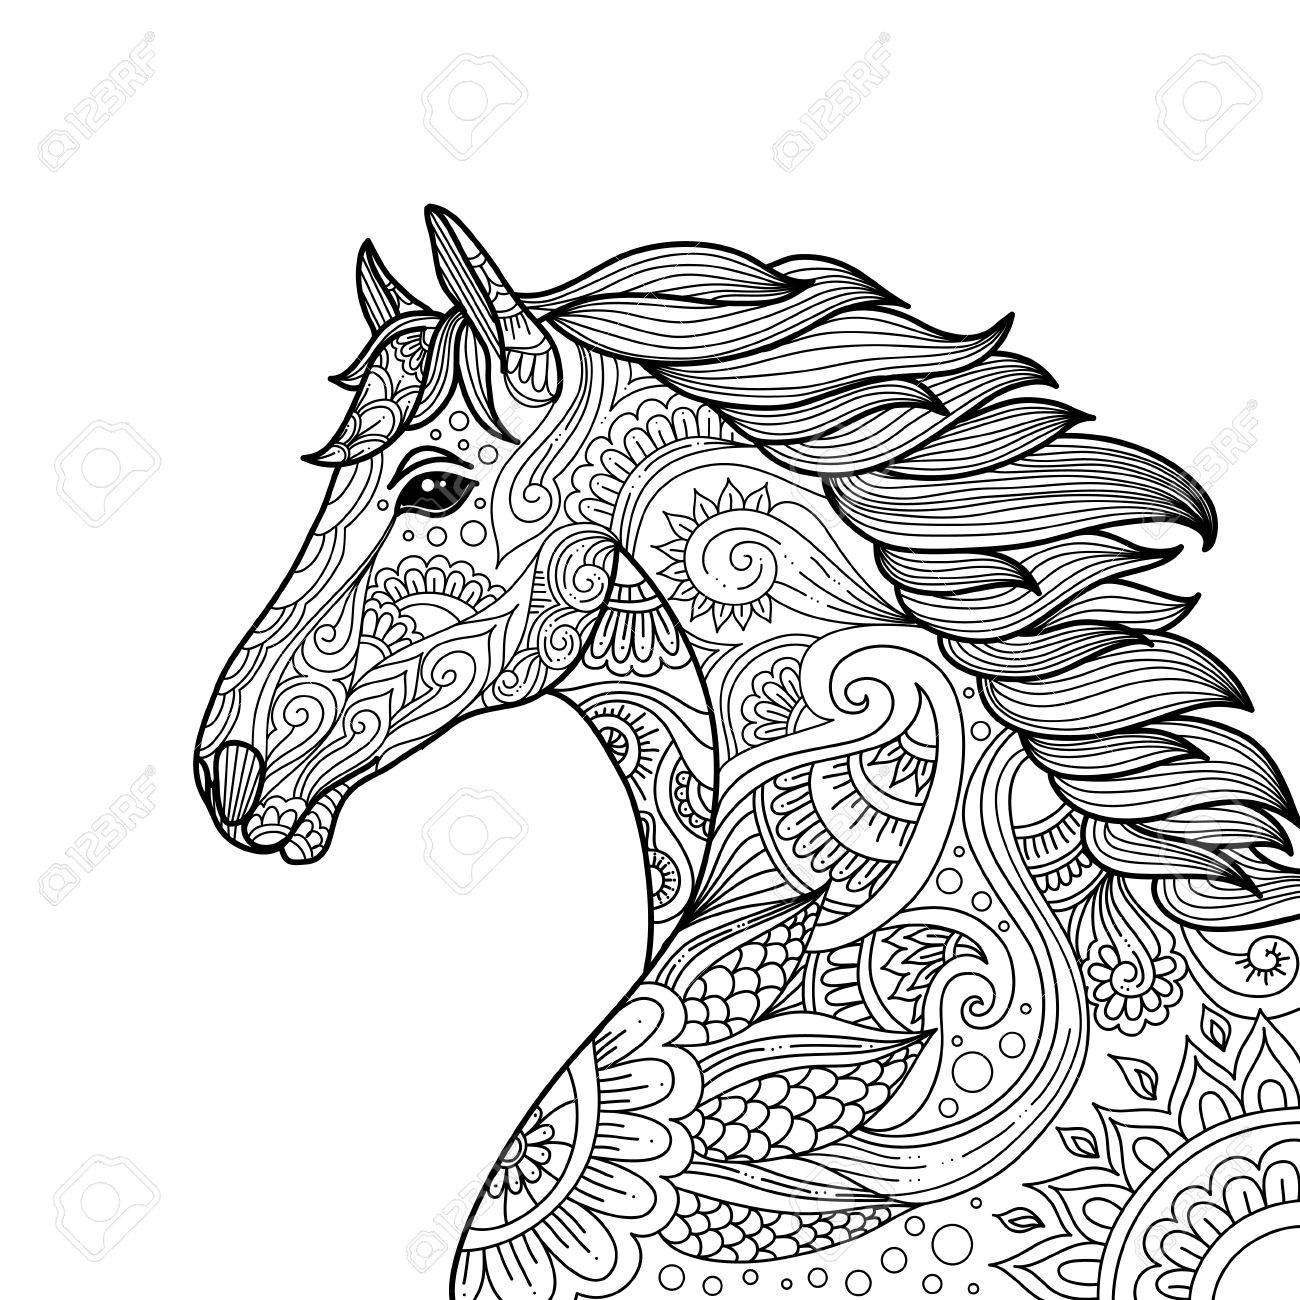 Stylized Hand Drawn Head Horse Coloring Page For Adults Vector